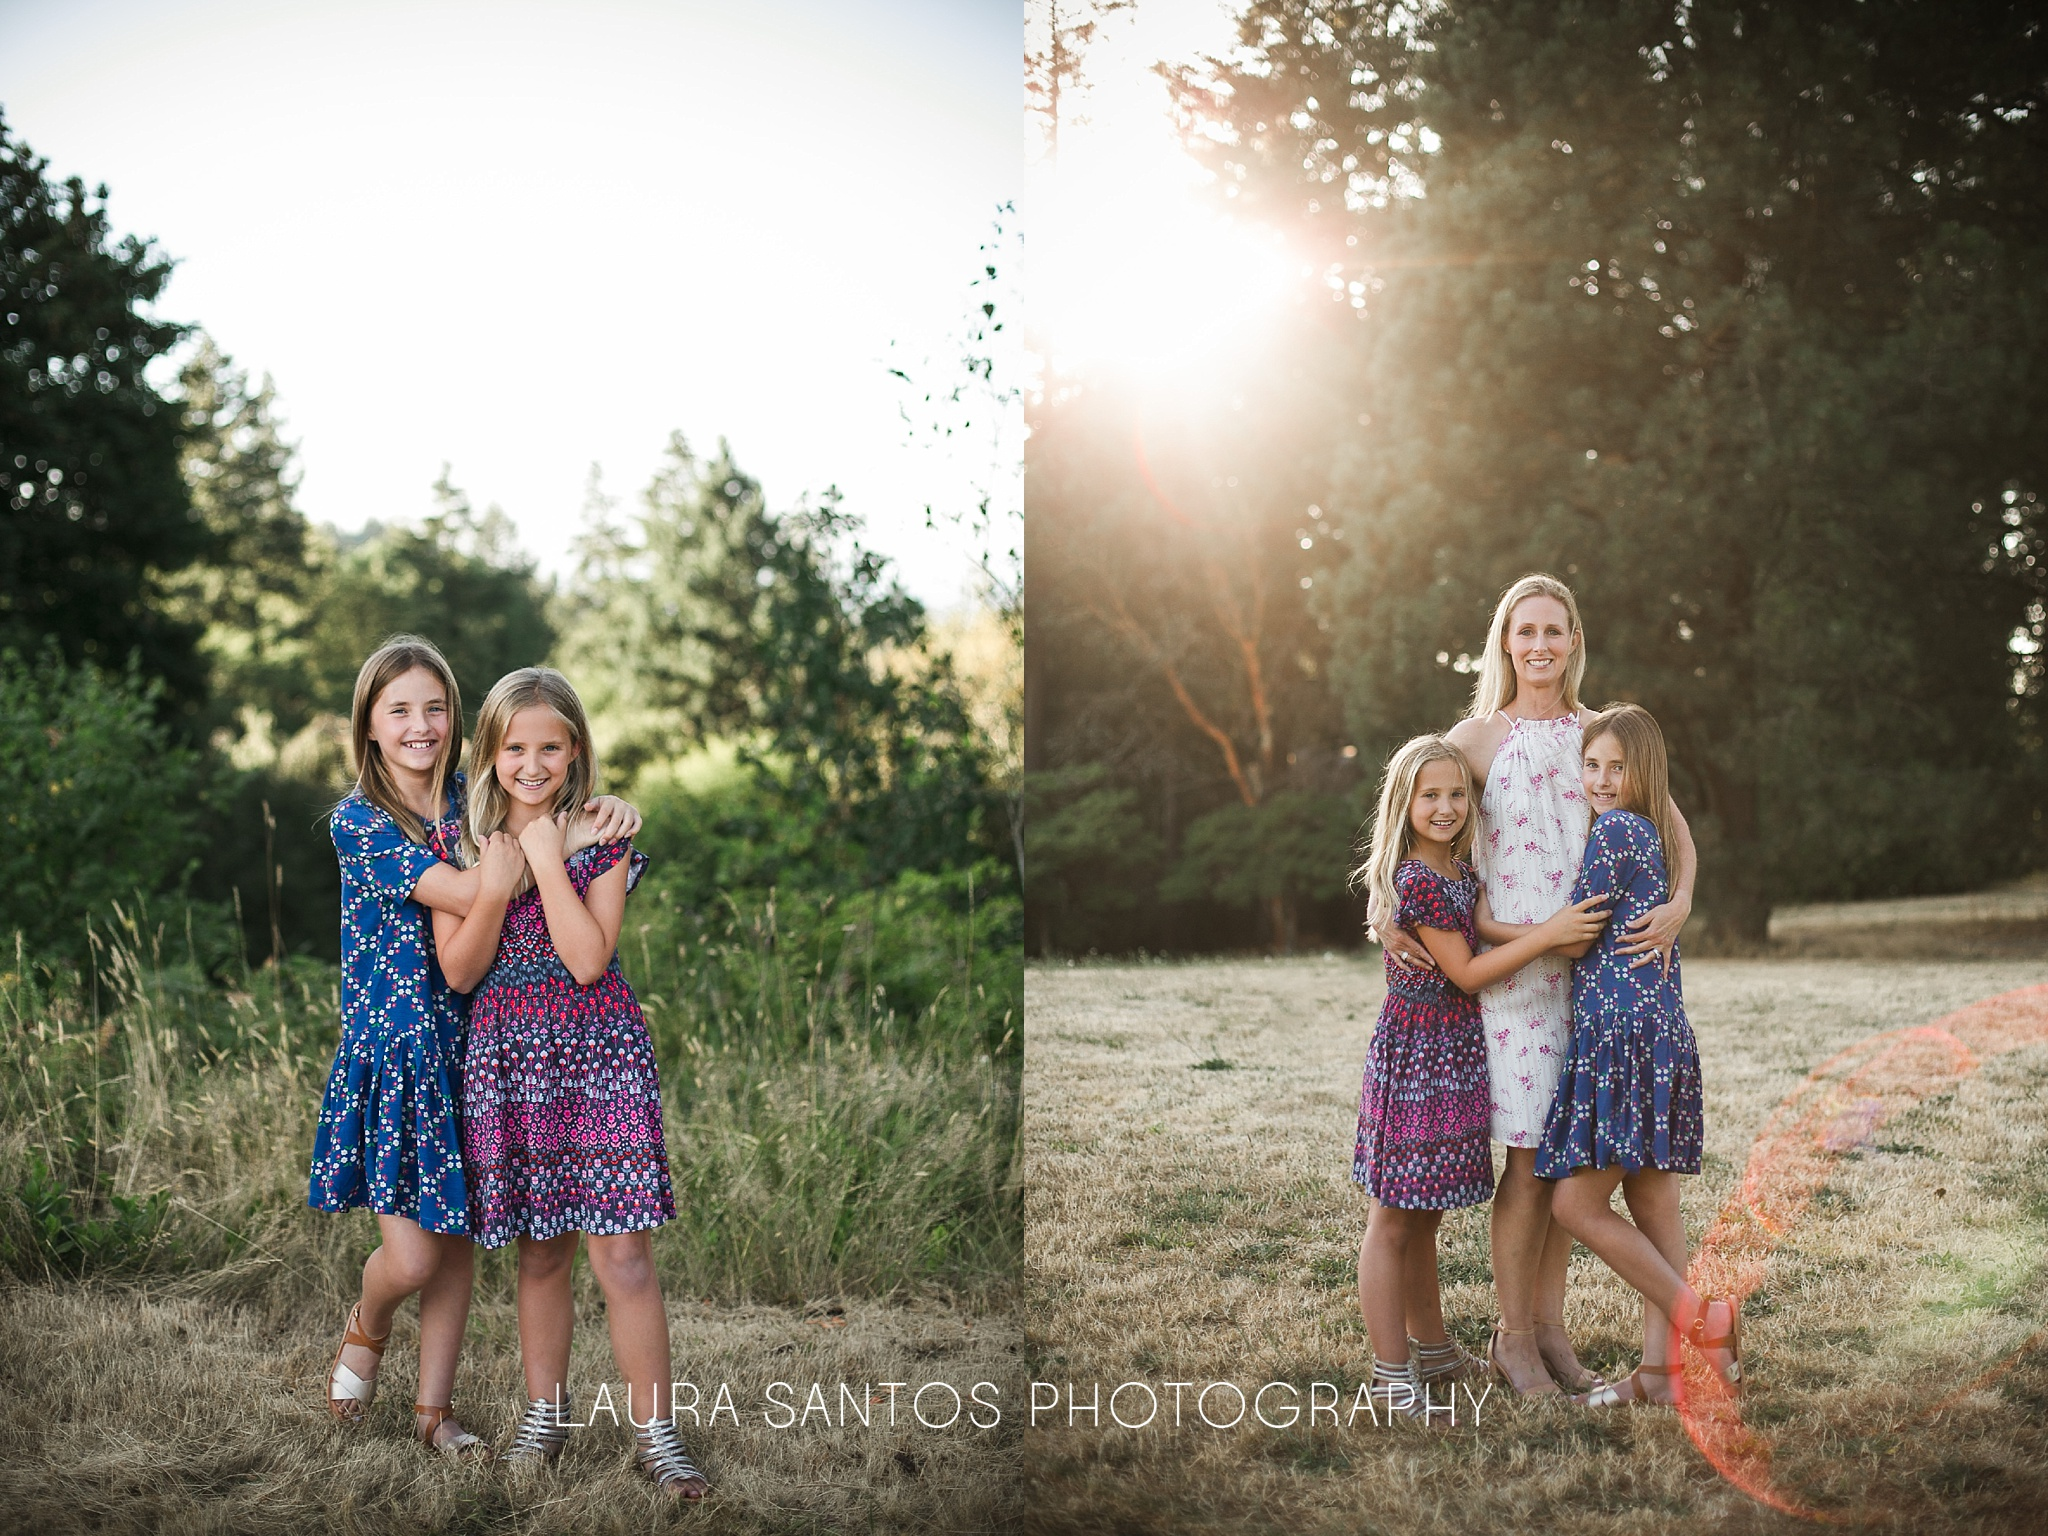 Laura Santos Photography Portland Oregon Family Photographer_0146.jpg